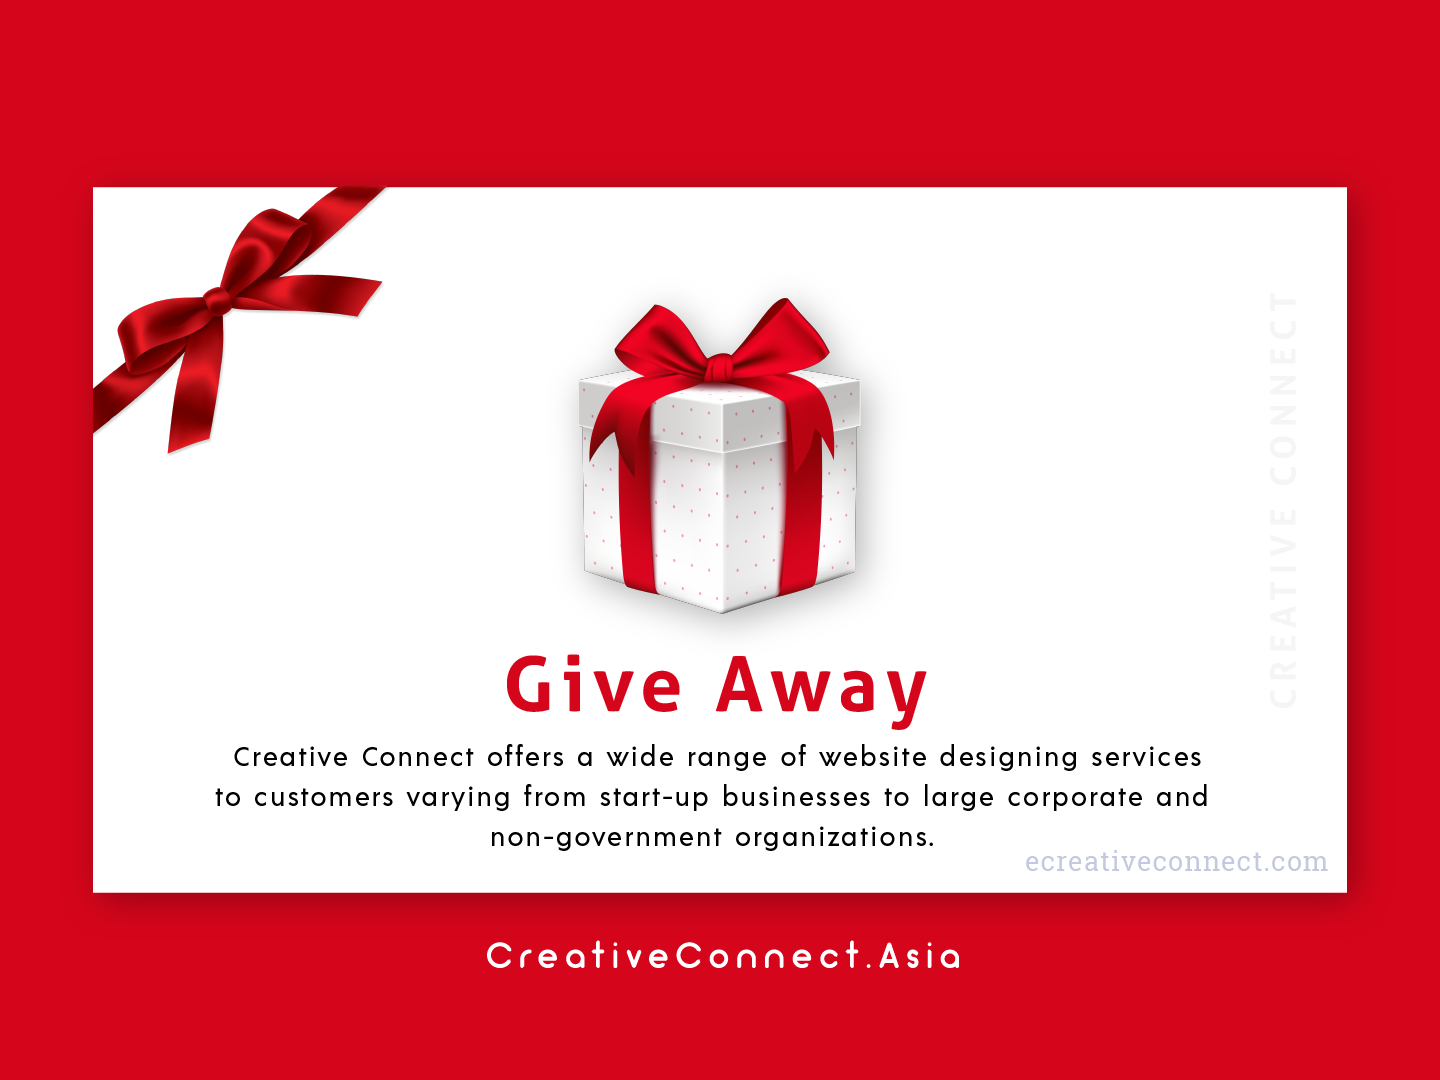 Daily UI - 97 97 lettering giveaway give red gift box typography animation website ux logo vector creative connect illustration branding web design dailyui creative